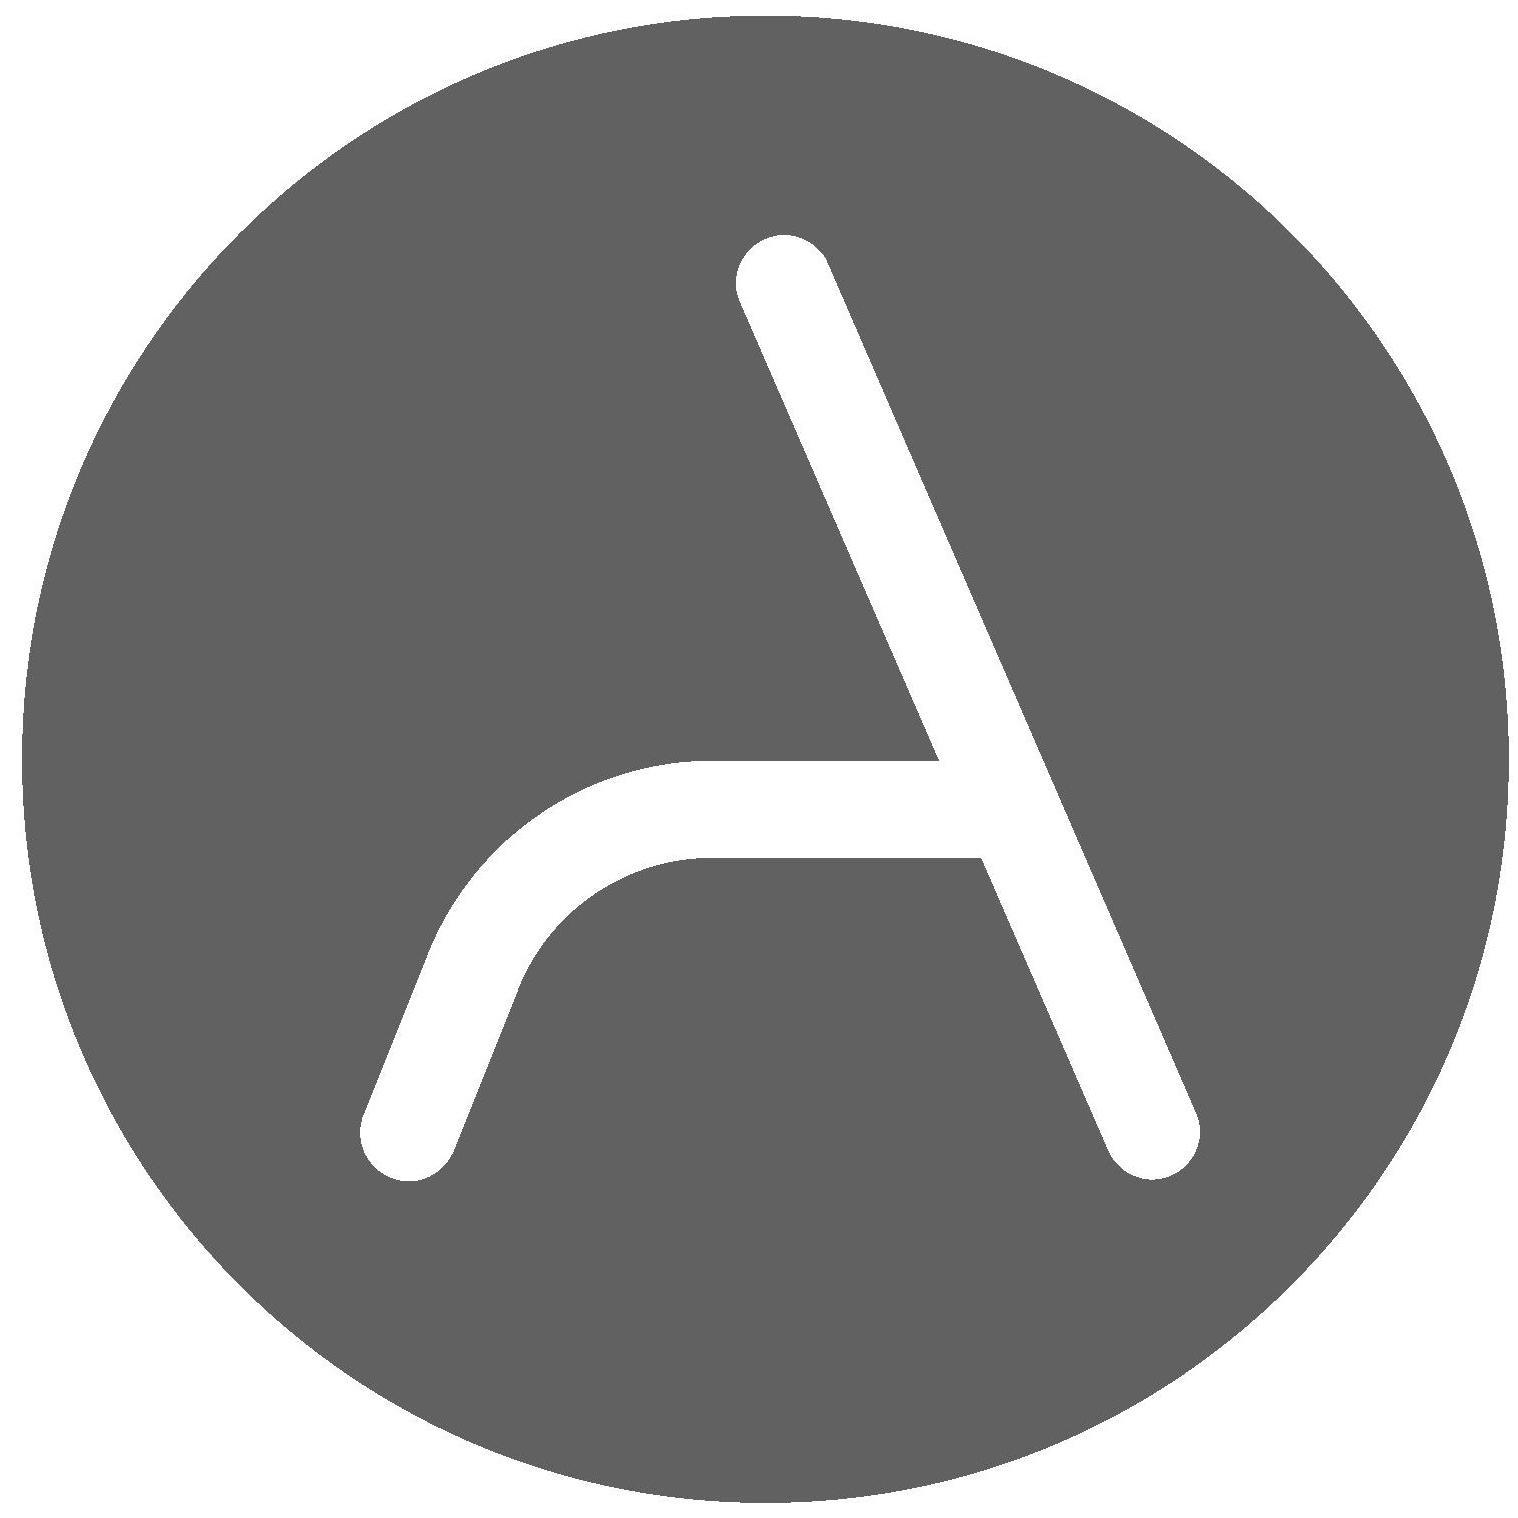 Arctuition